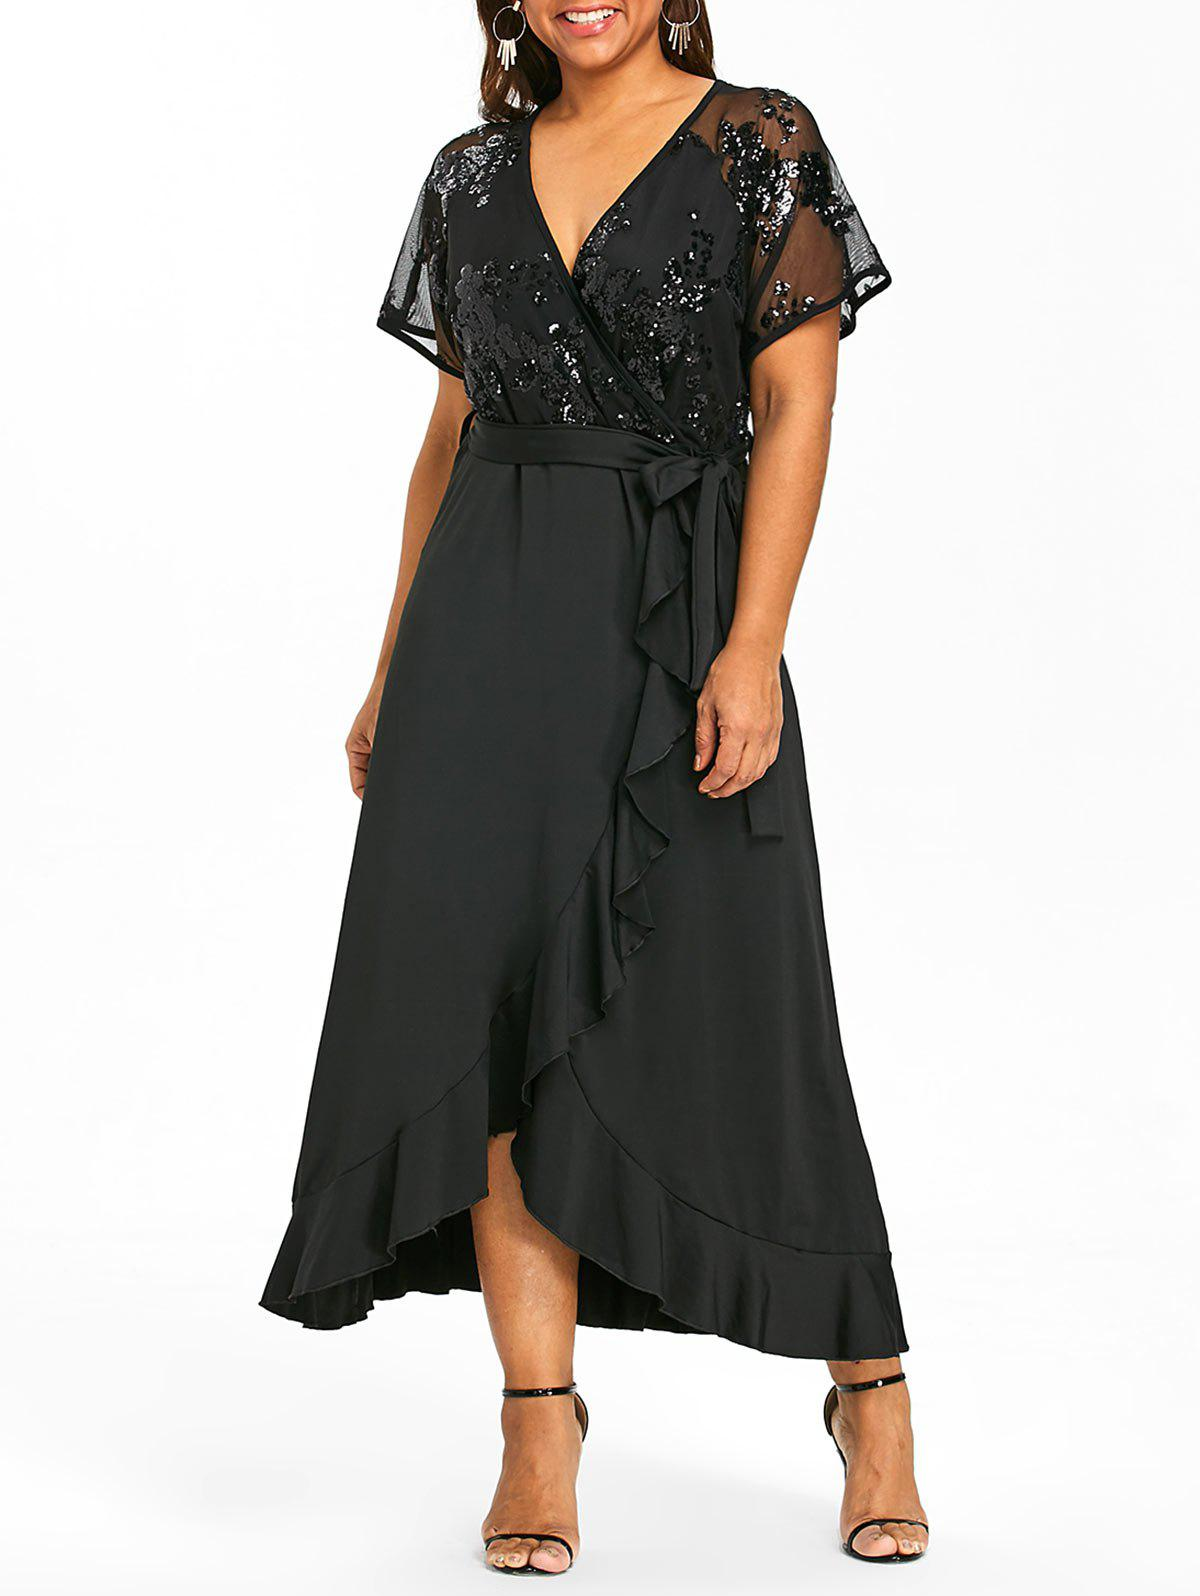 Chic Sequins Ruffles Trim Plus Size Maxi Dress